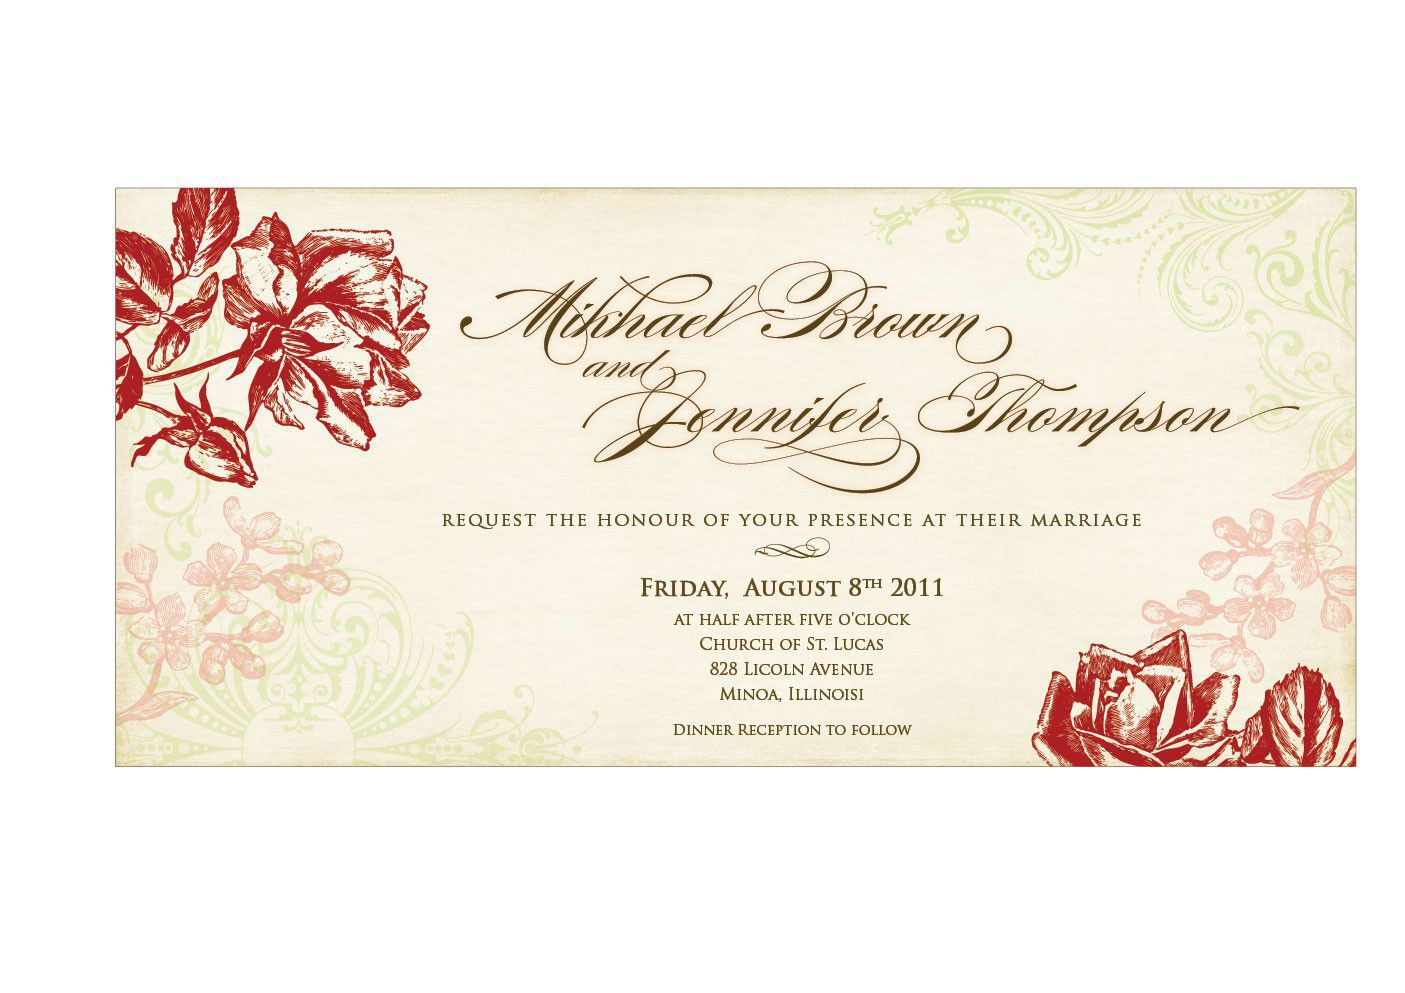 Engagement Invitation Card Design Online Invitations Card Template - Card template free: online wedding invitation cards templates